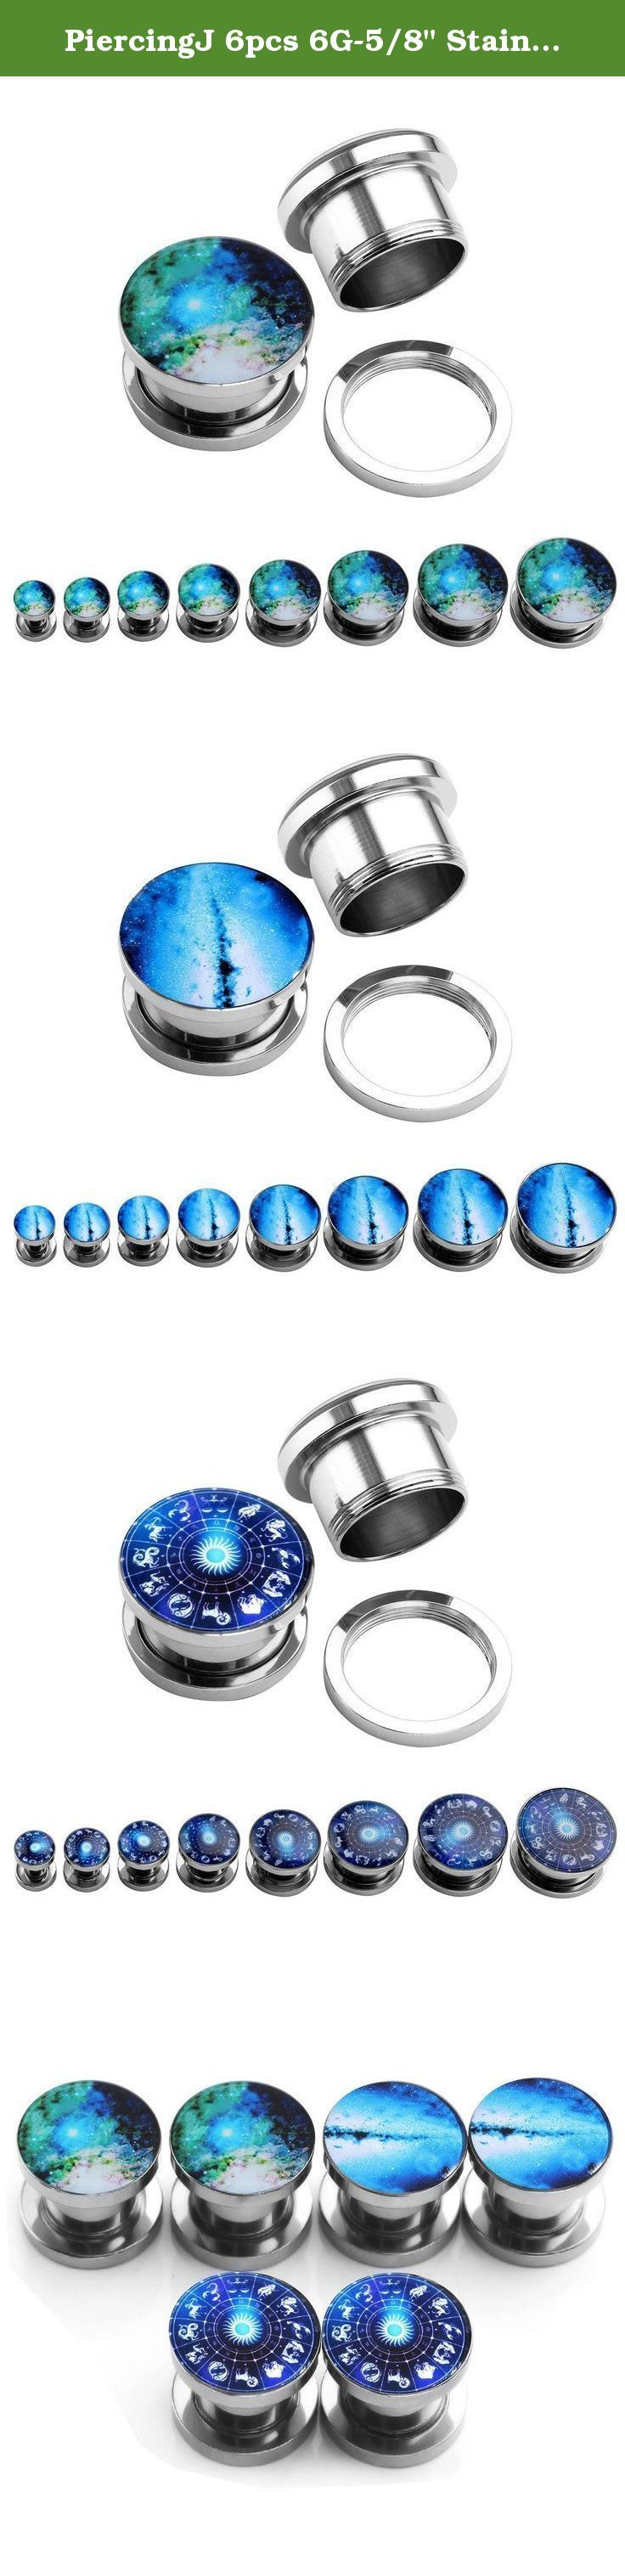 """PiercingJ 6pcs 6G-5/8"""" Stainless Steel Screw Flesh Tunnels Ear Stretcher Expander Plugs. Material: stainless steel. Gauge:2G(6mm); Flare Size:10mm. Total height:12mm. Quantity:3 pairs."""